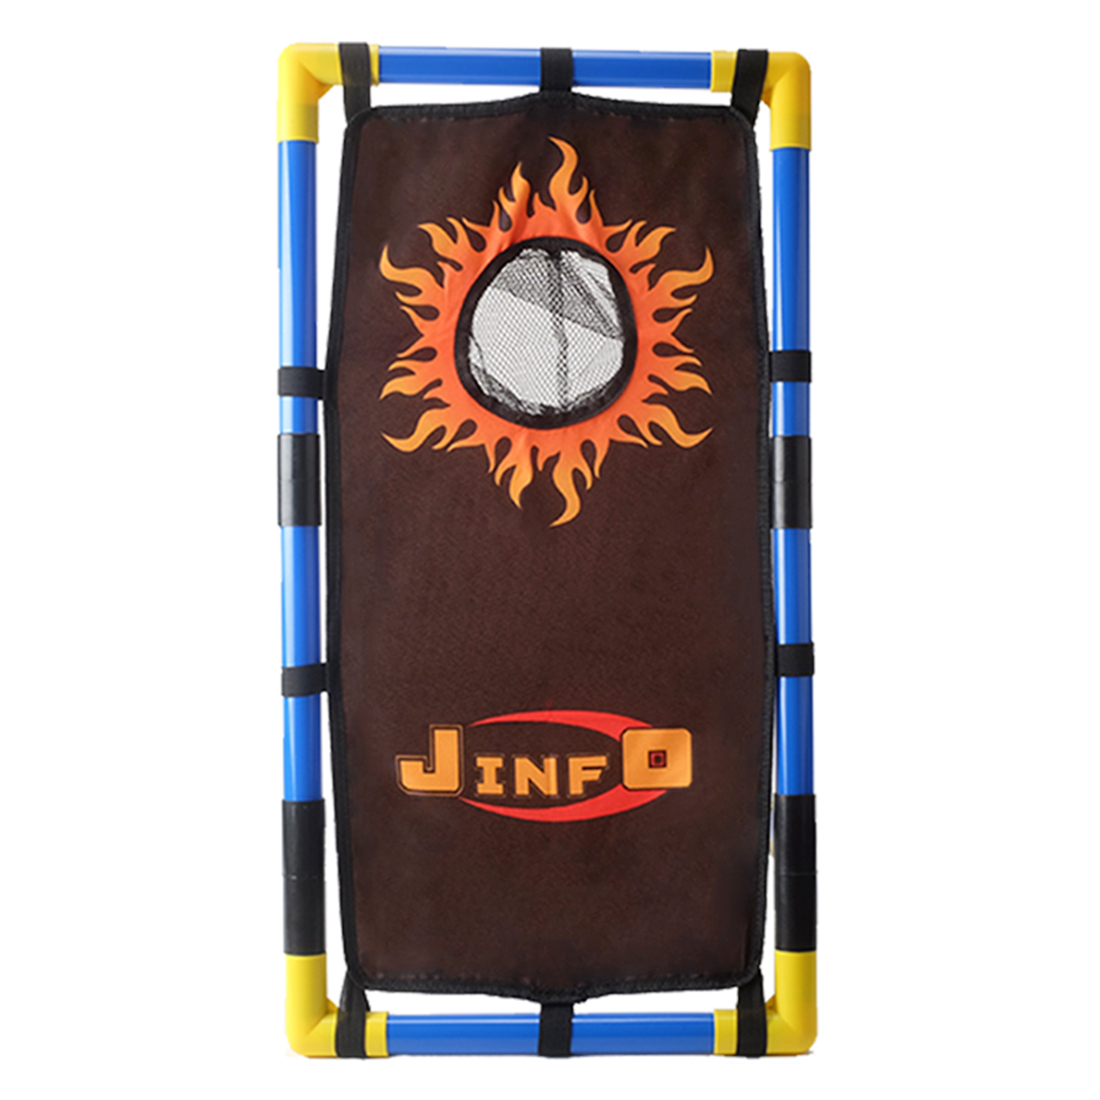 2019 Hot Sale Stand Scoring Target with Frame Rack Outdoor Tactical Shooting Training Aim for Nerf Soft Dart Paintball Airsoft-in Paintball Accessories from Sports & Entertainment